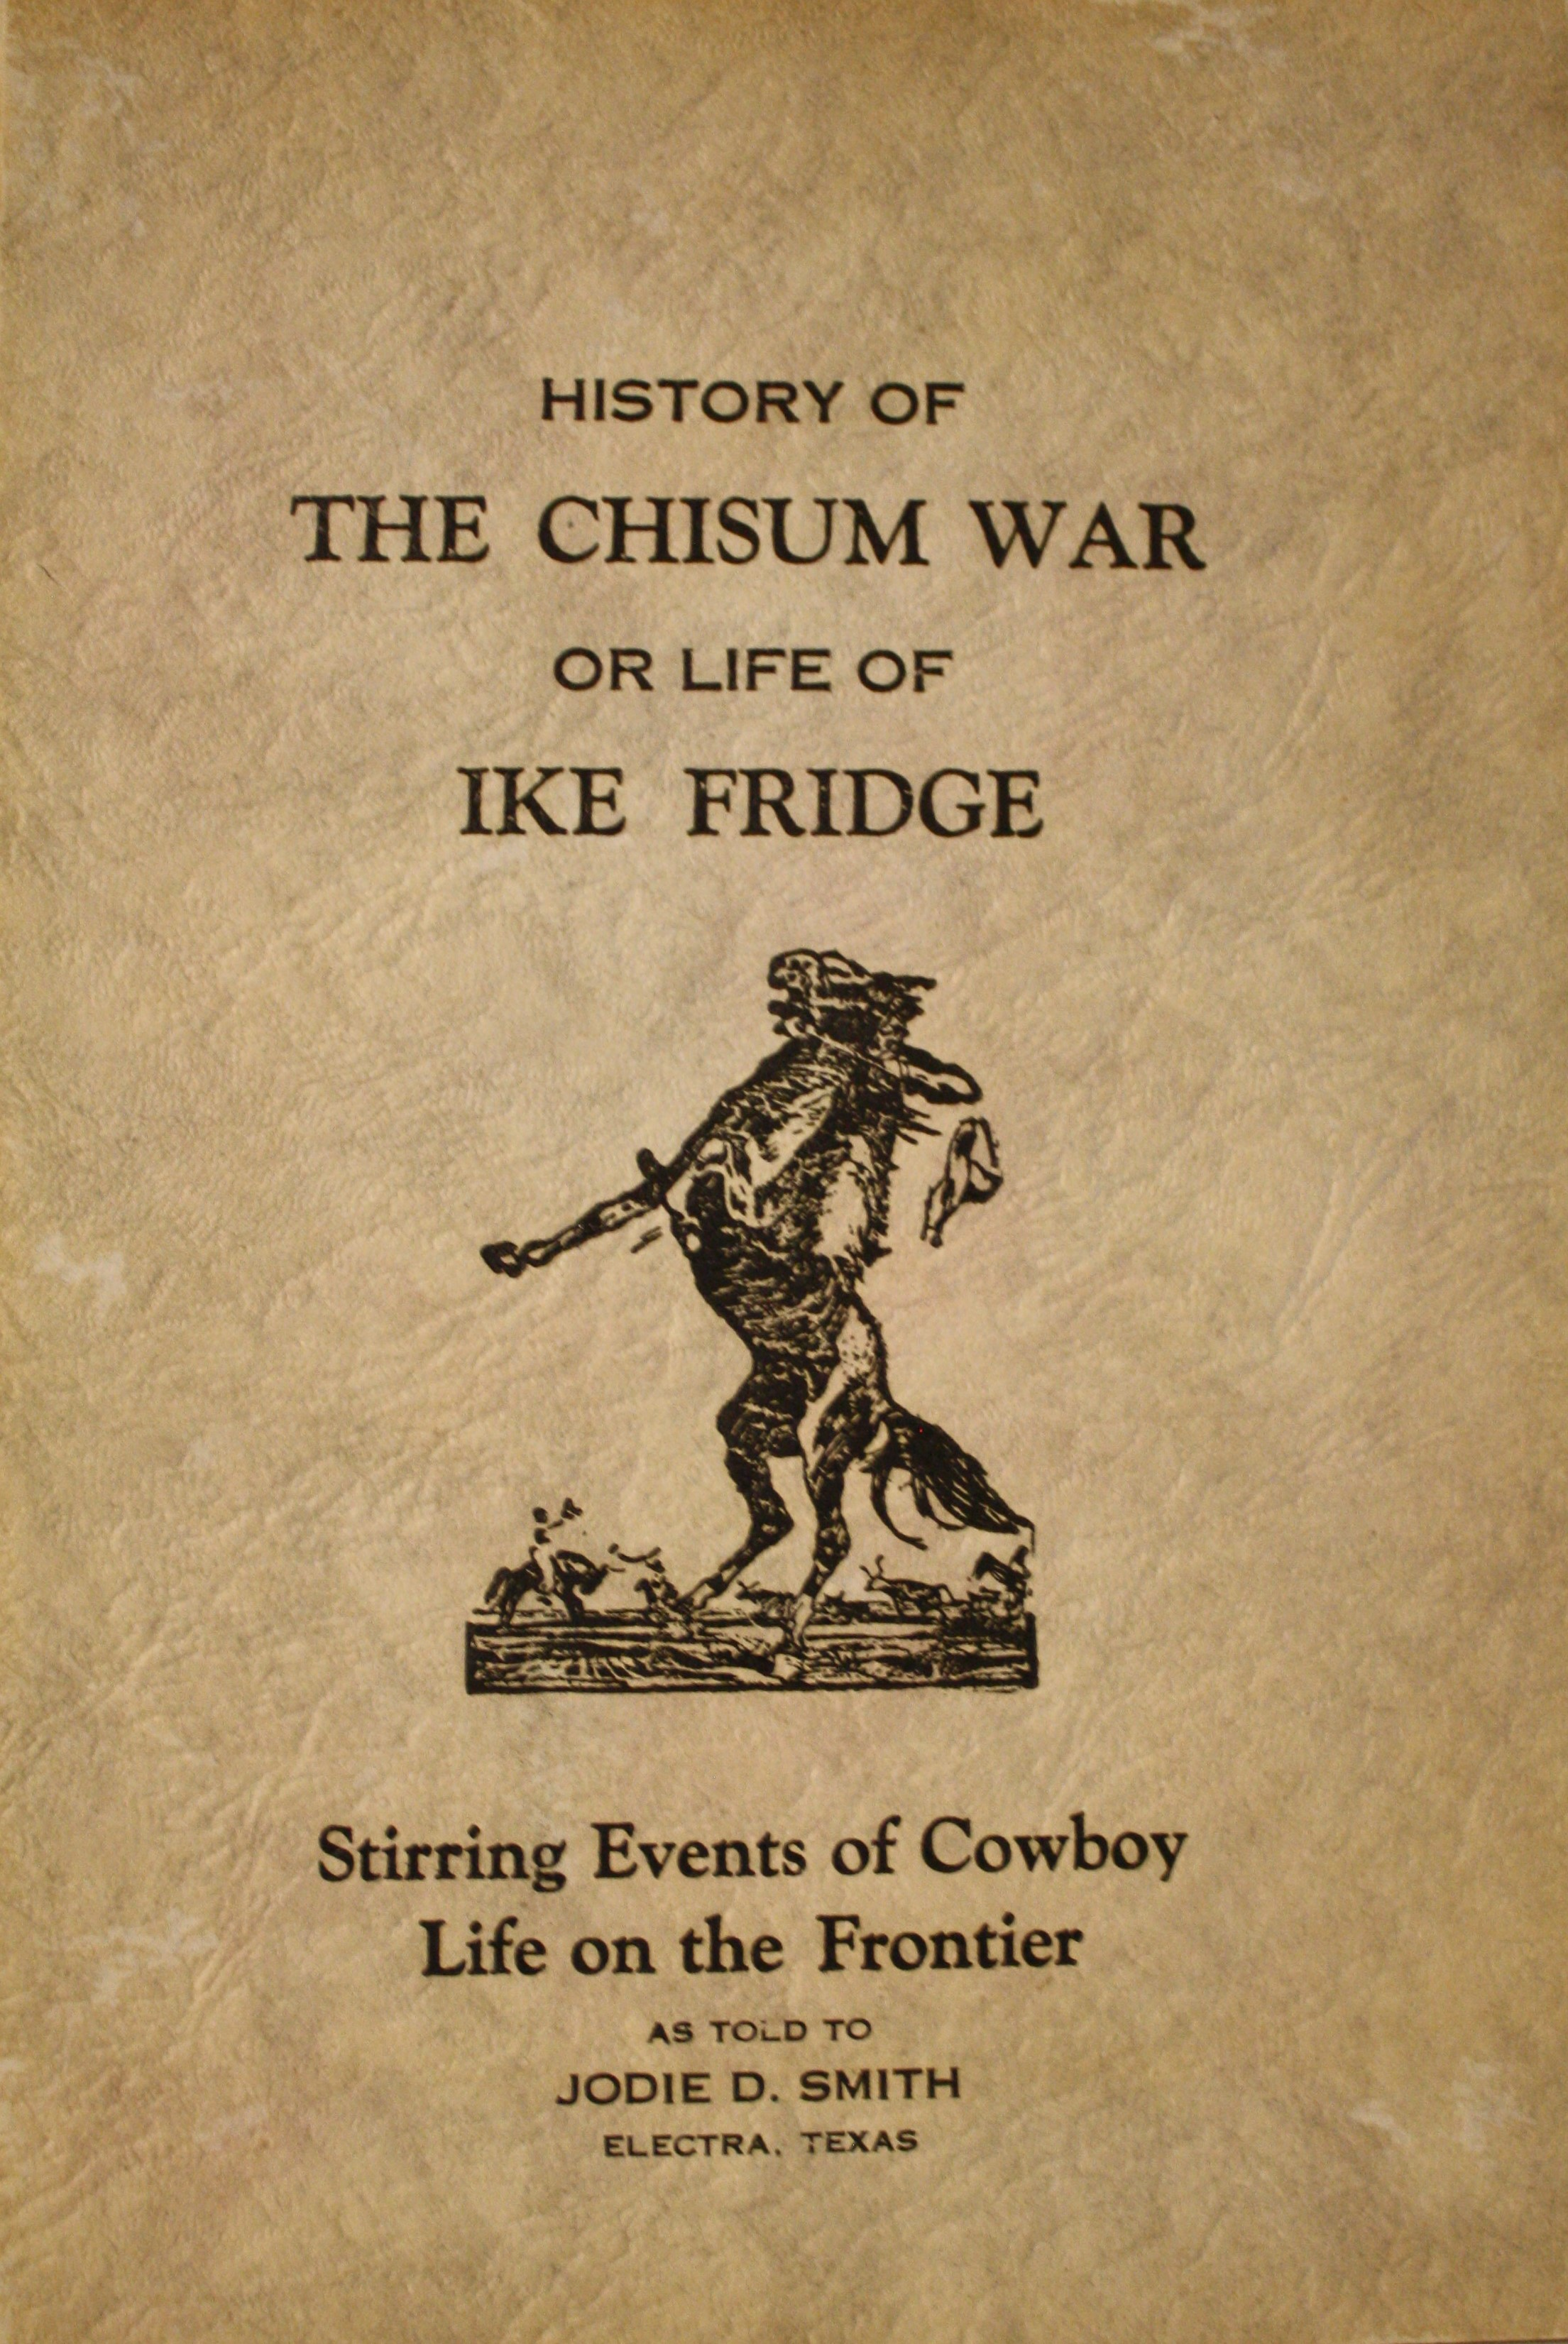 Image for History of The Chisum War Or Life Of Ike Fridge Stirring Events of Cowboy Life ON The Frontier As Told To Jodie D. Smith